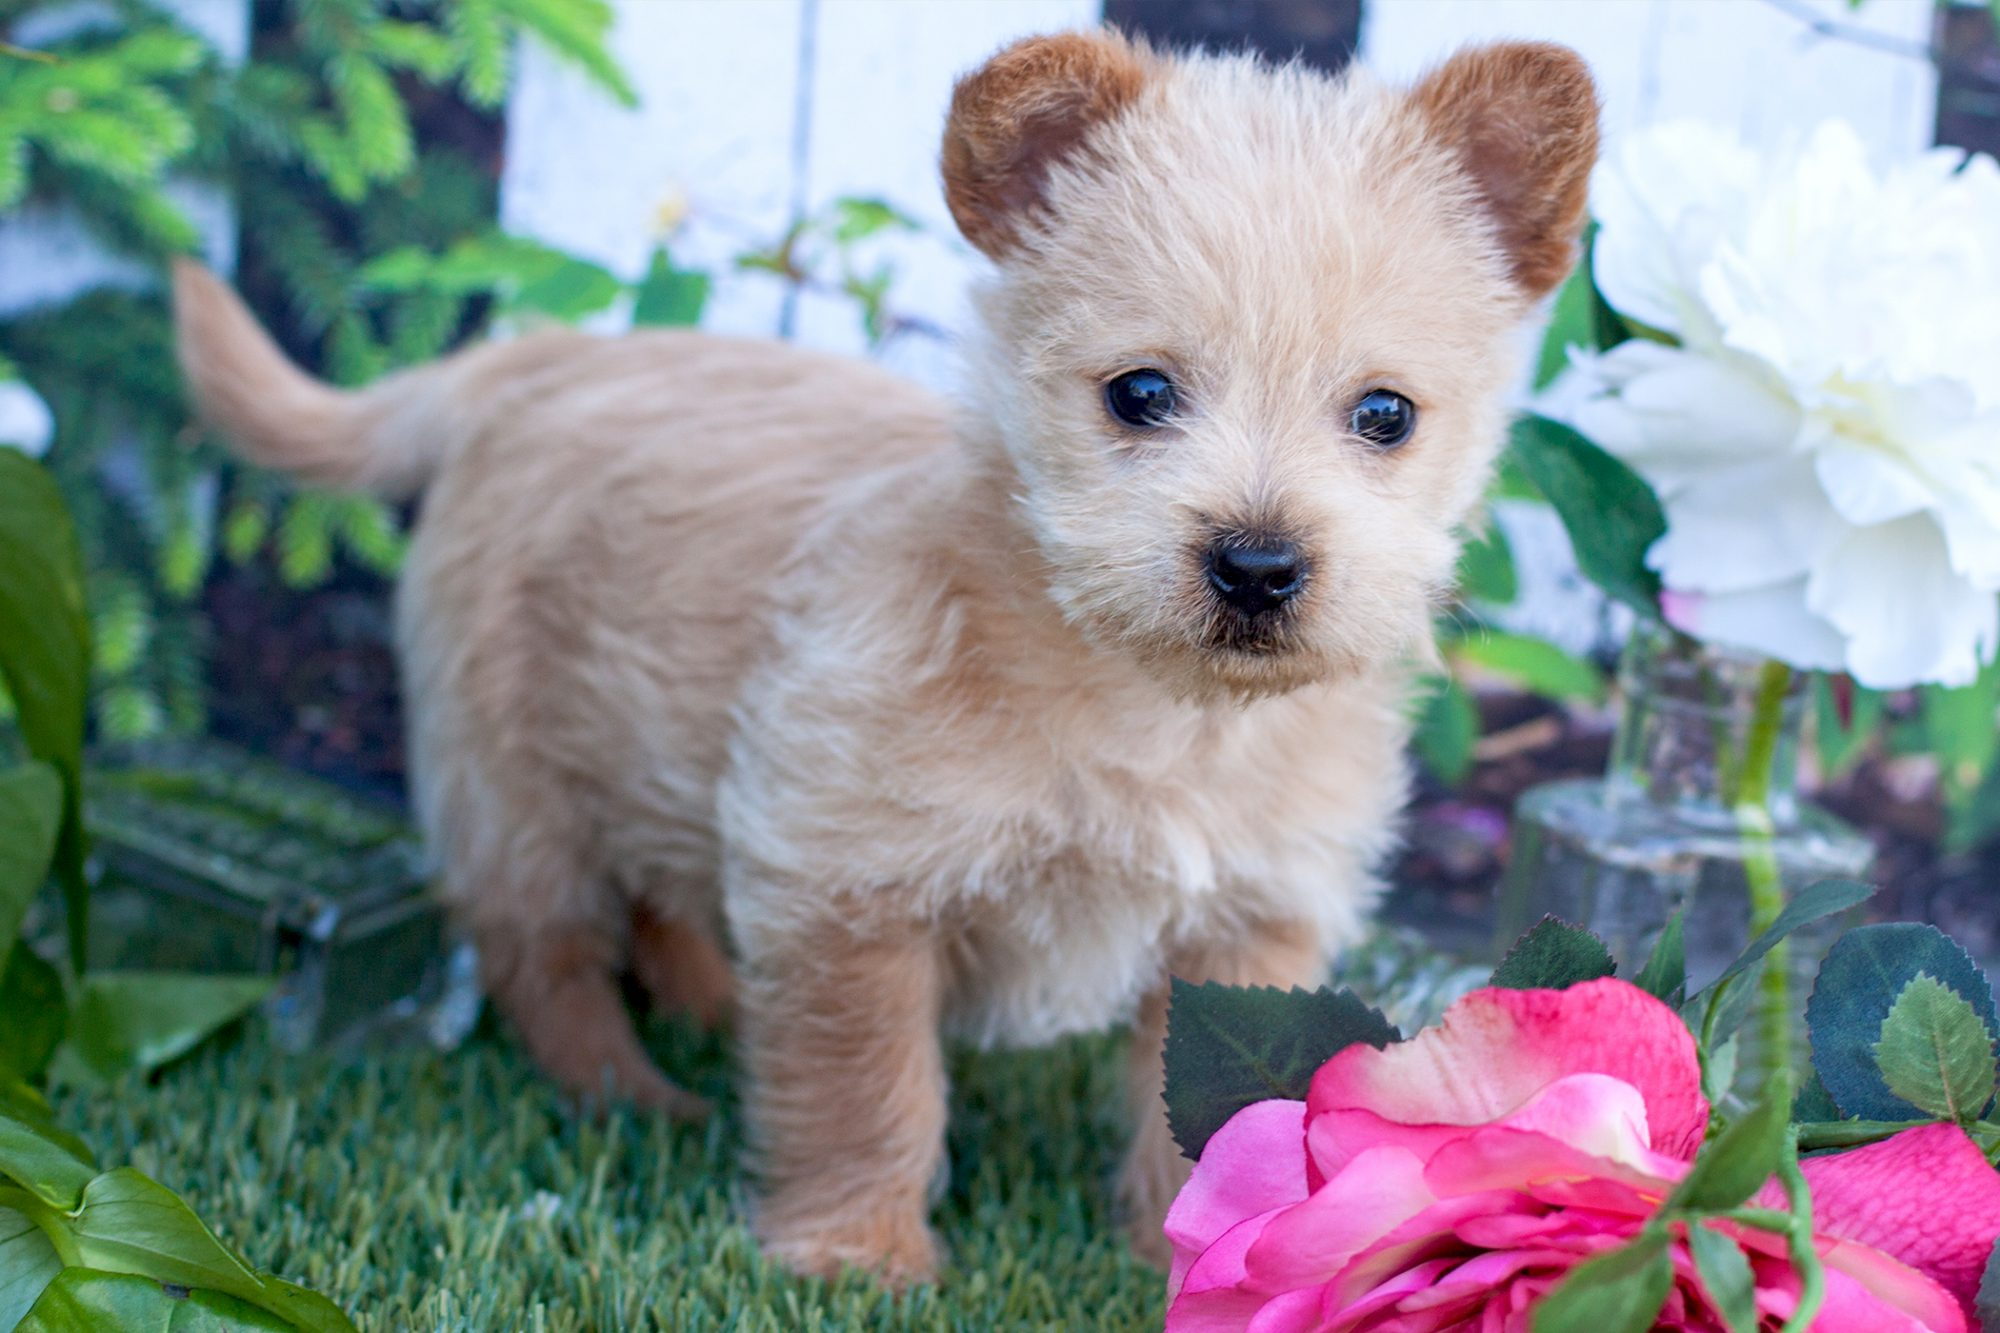 Strawberry blond Norwich Terrier stands among pink and white flowers